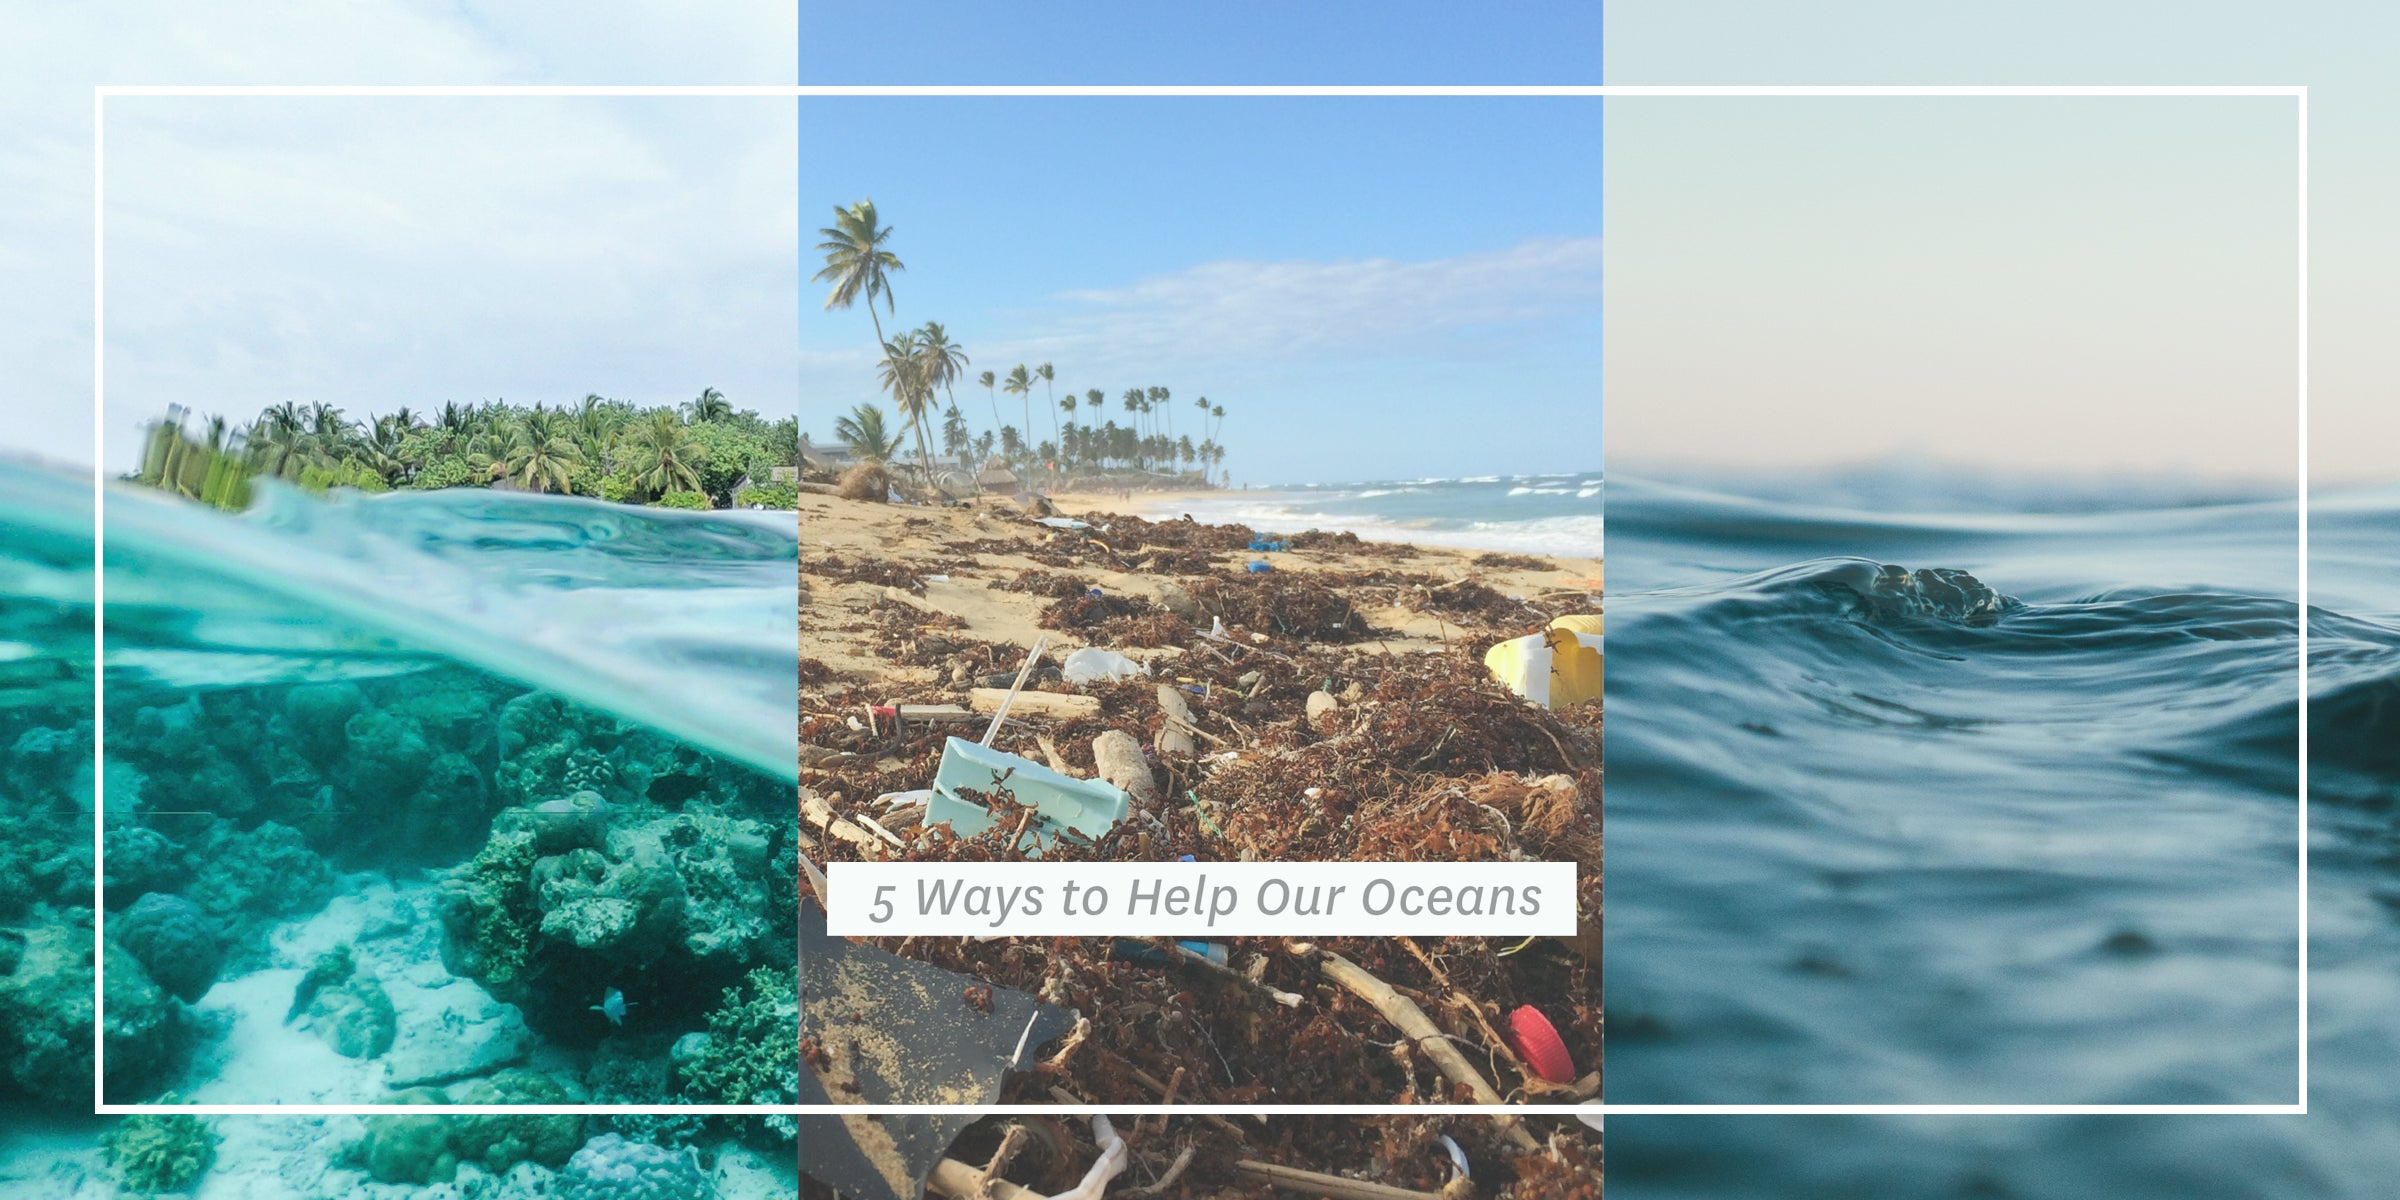 5 Ways to Help Our Oceans